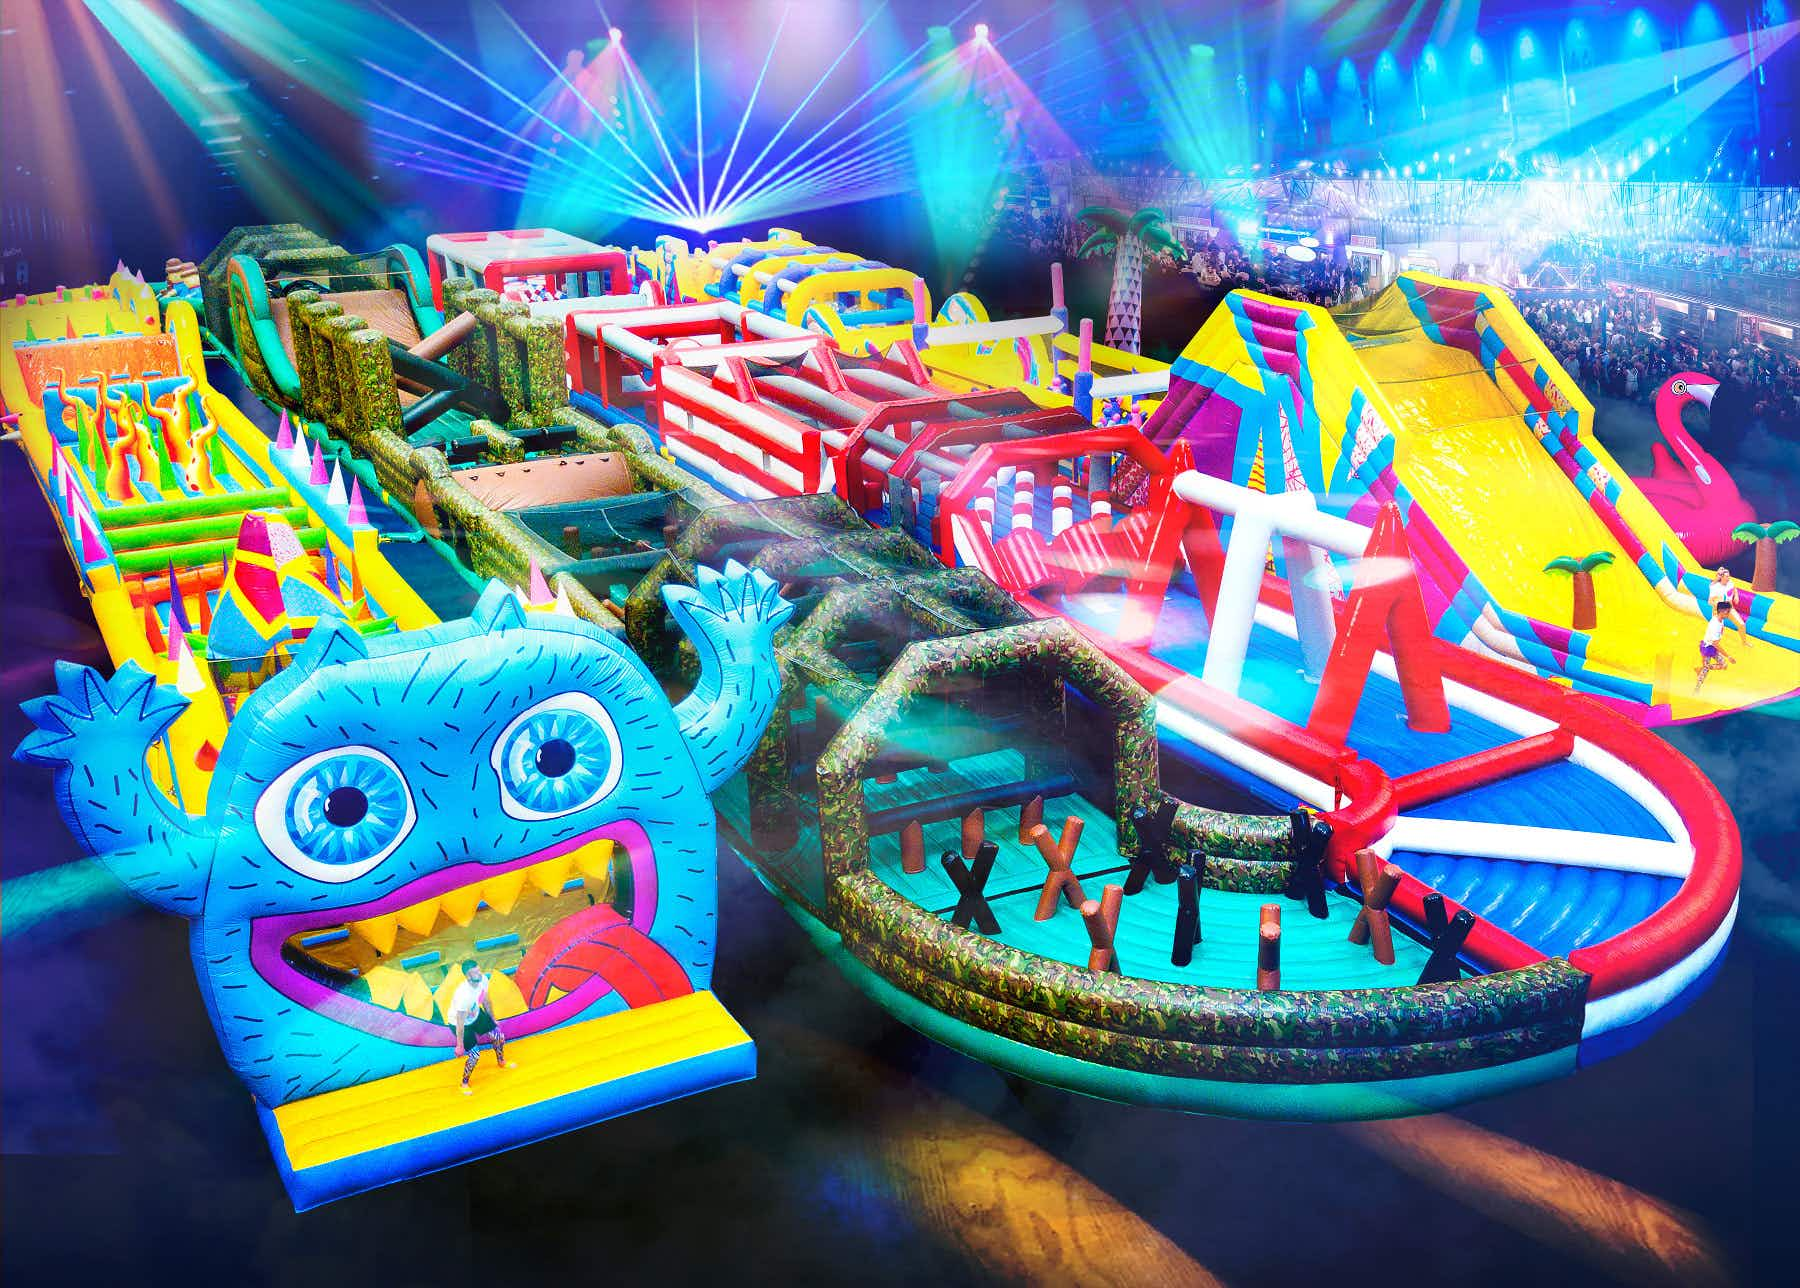 Unleash your inner child on the world's biggest bouncy obstacle course